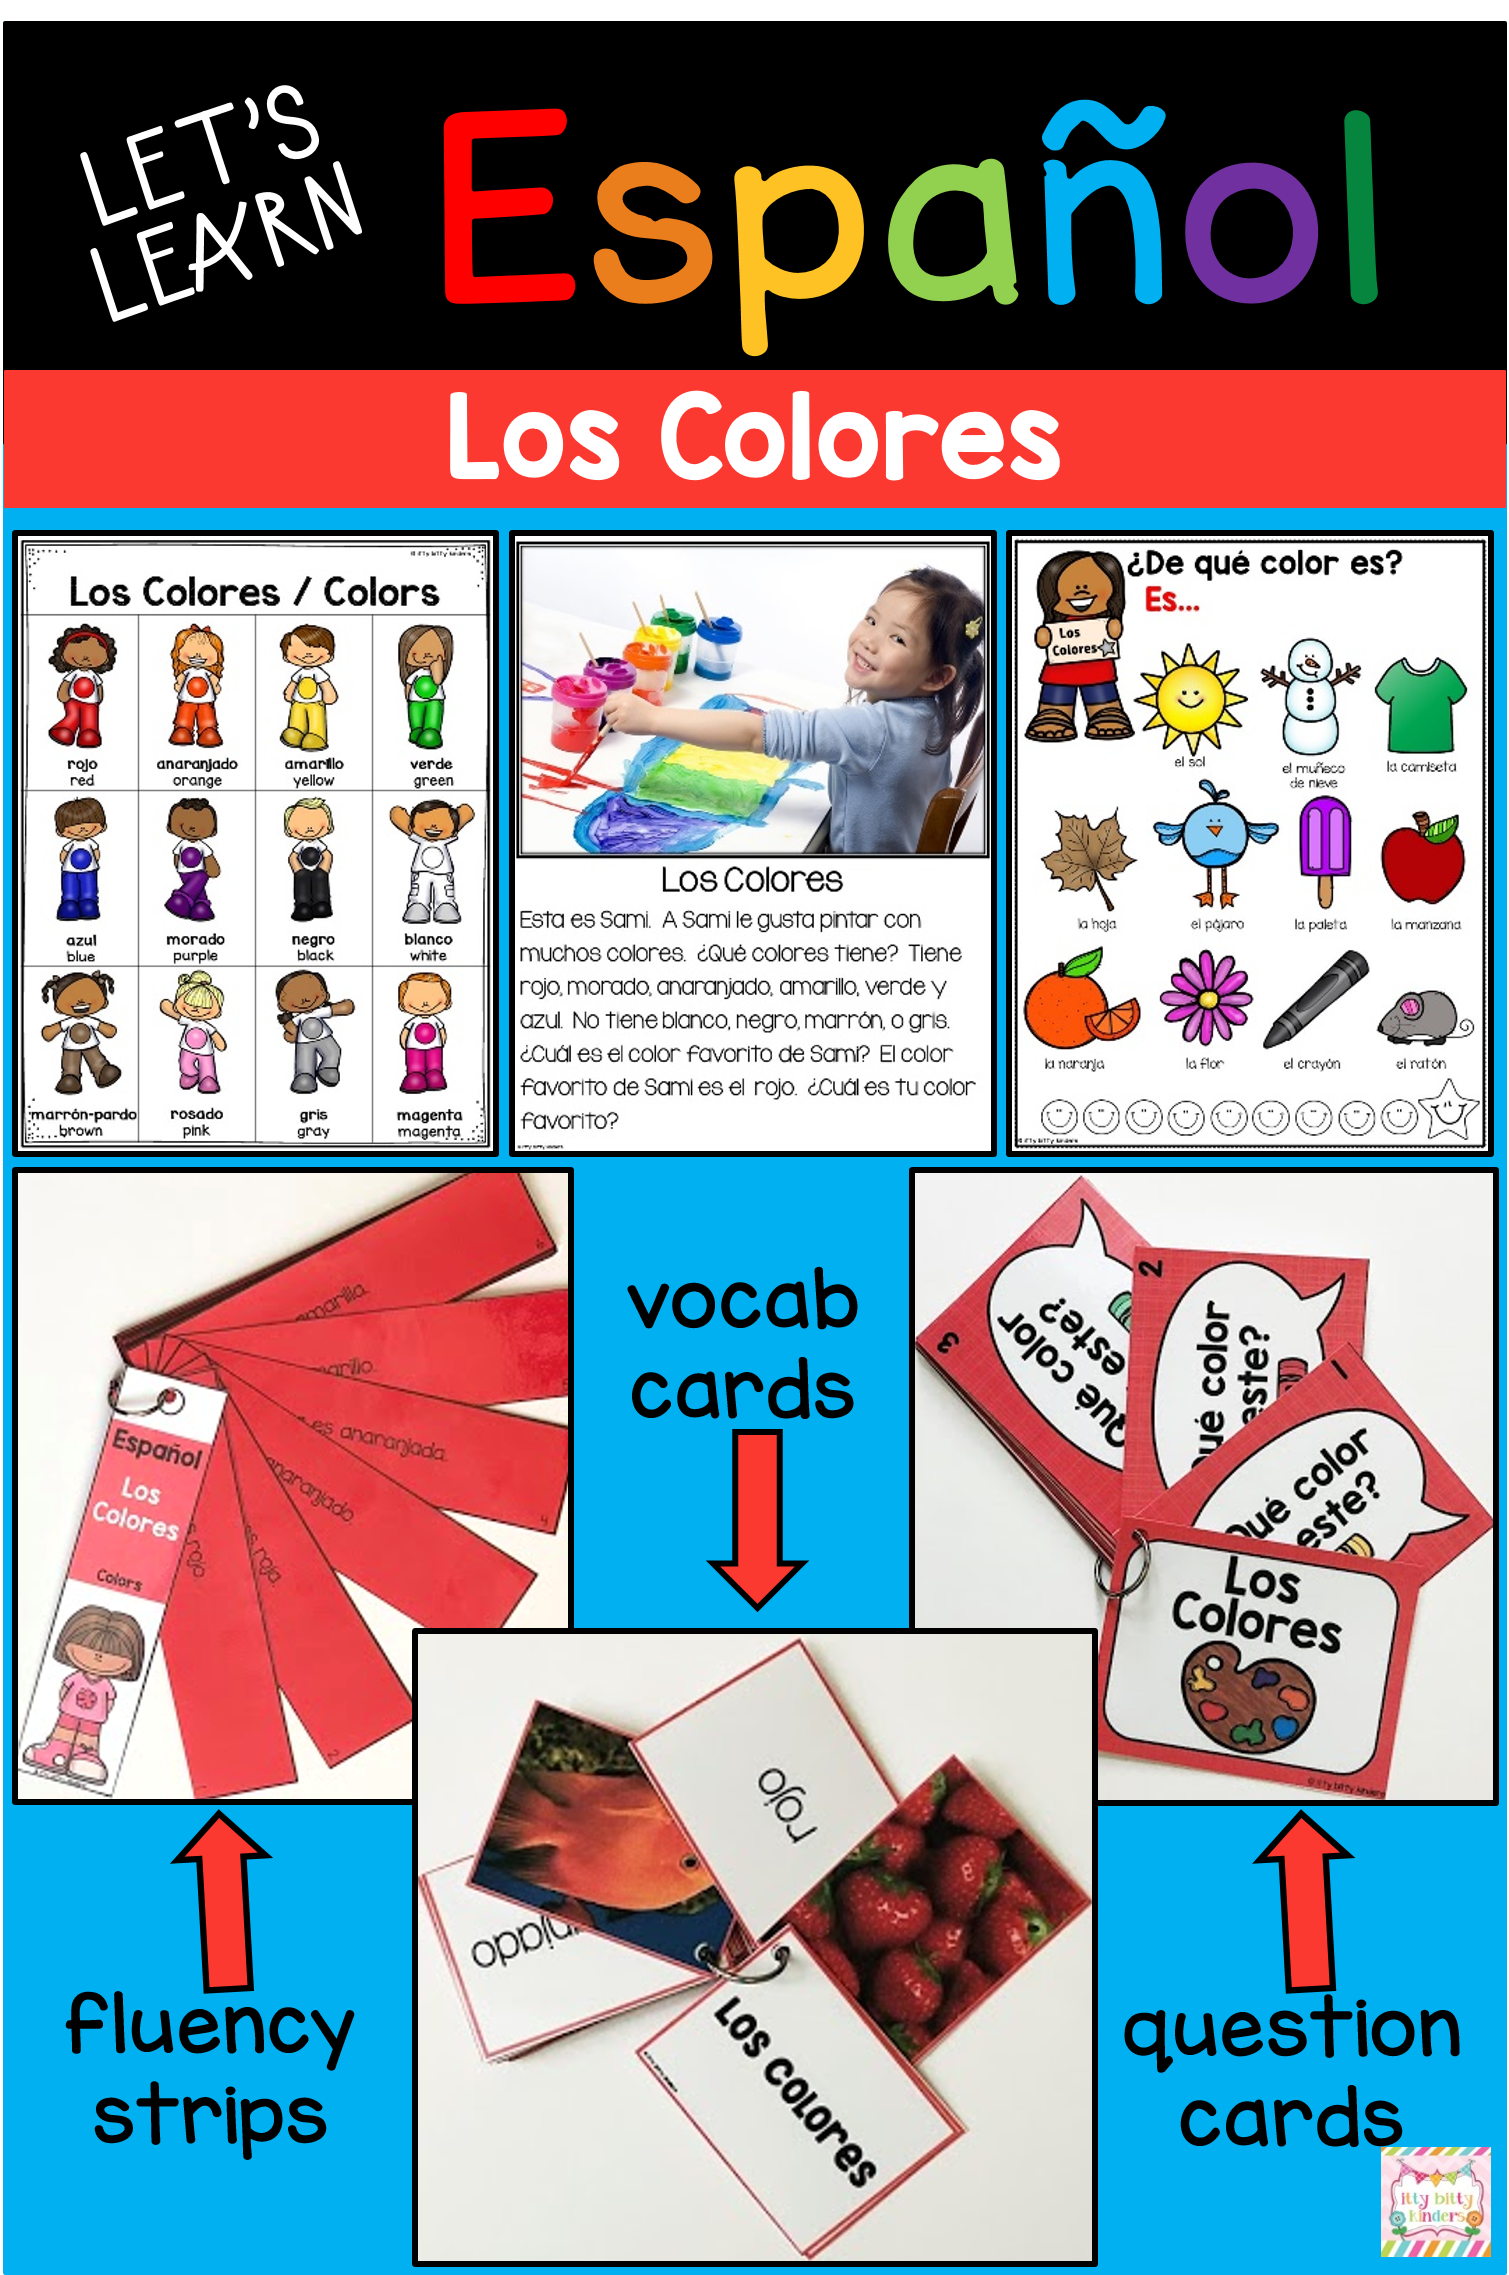 Colors In Spanish Spanish Vocabulary Let S Learn Espanol